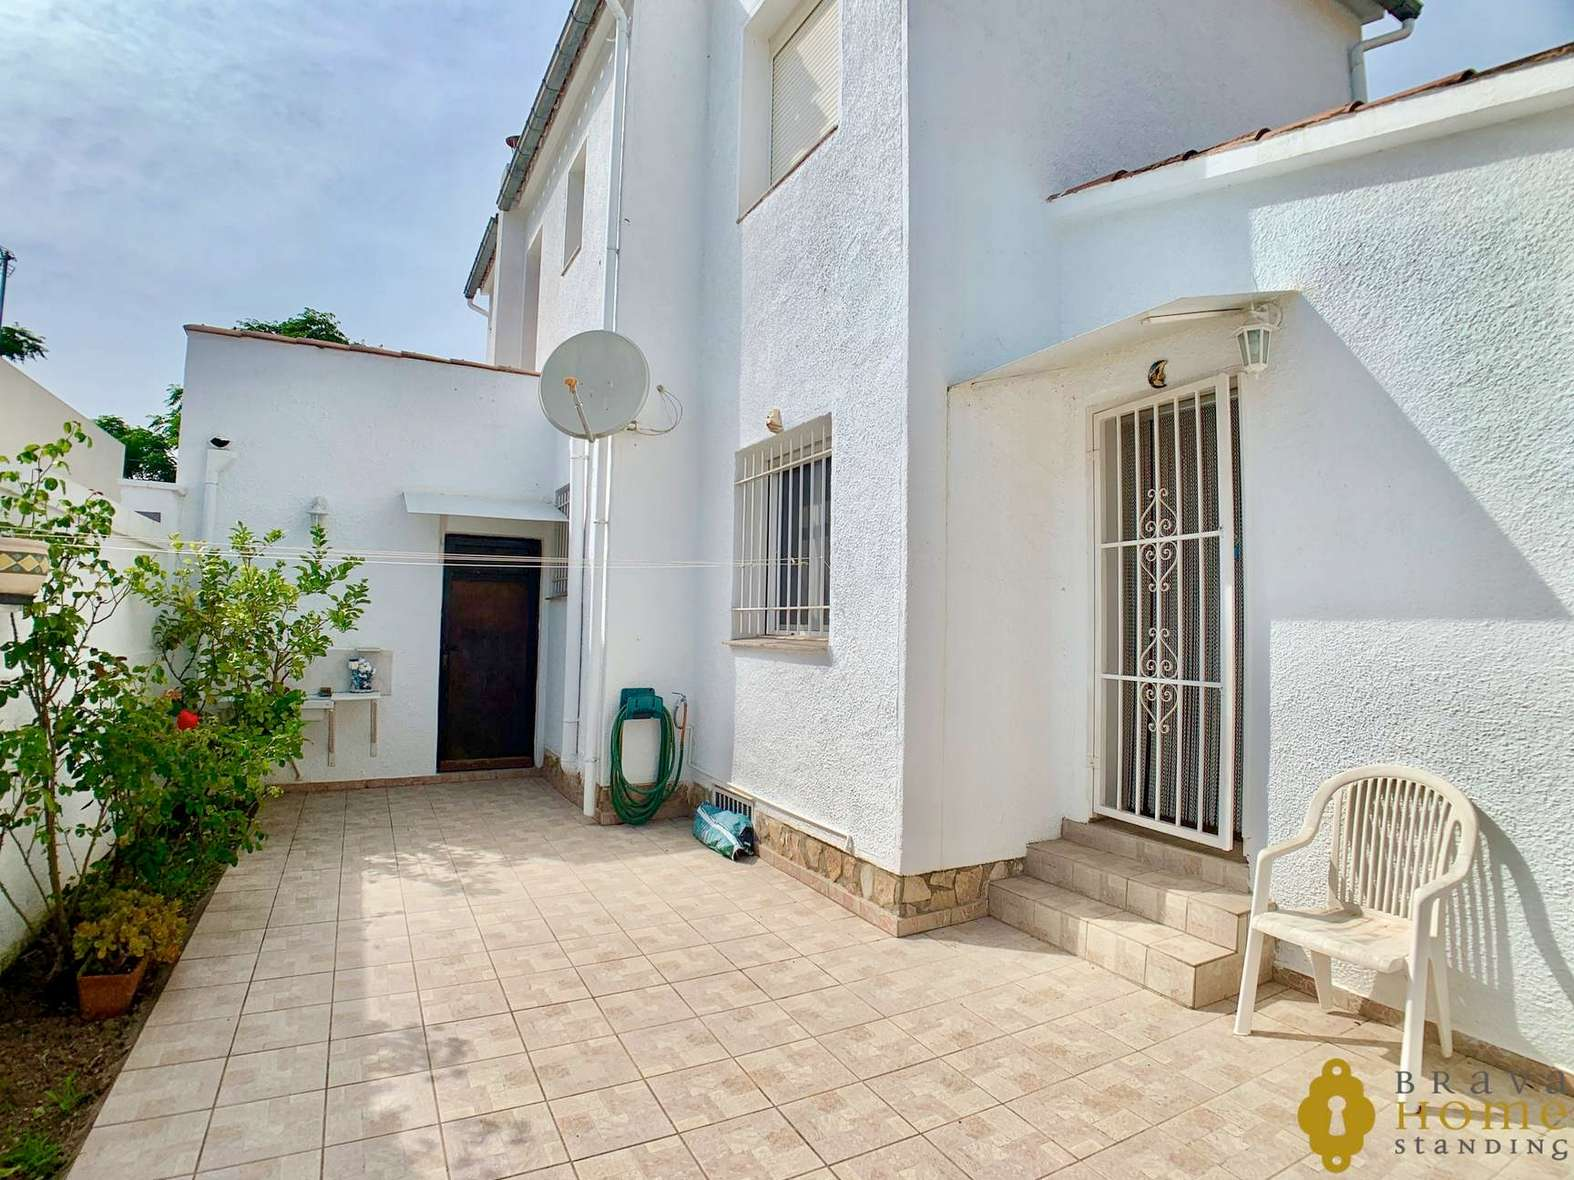 NICE HOUSE WITH POOL IN A QUIET AREA FOR SALES IN EMPURIABRAVA